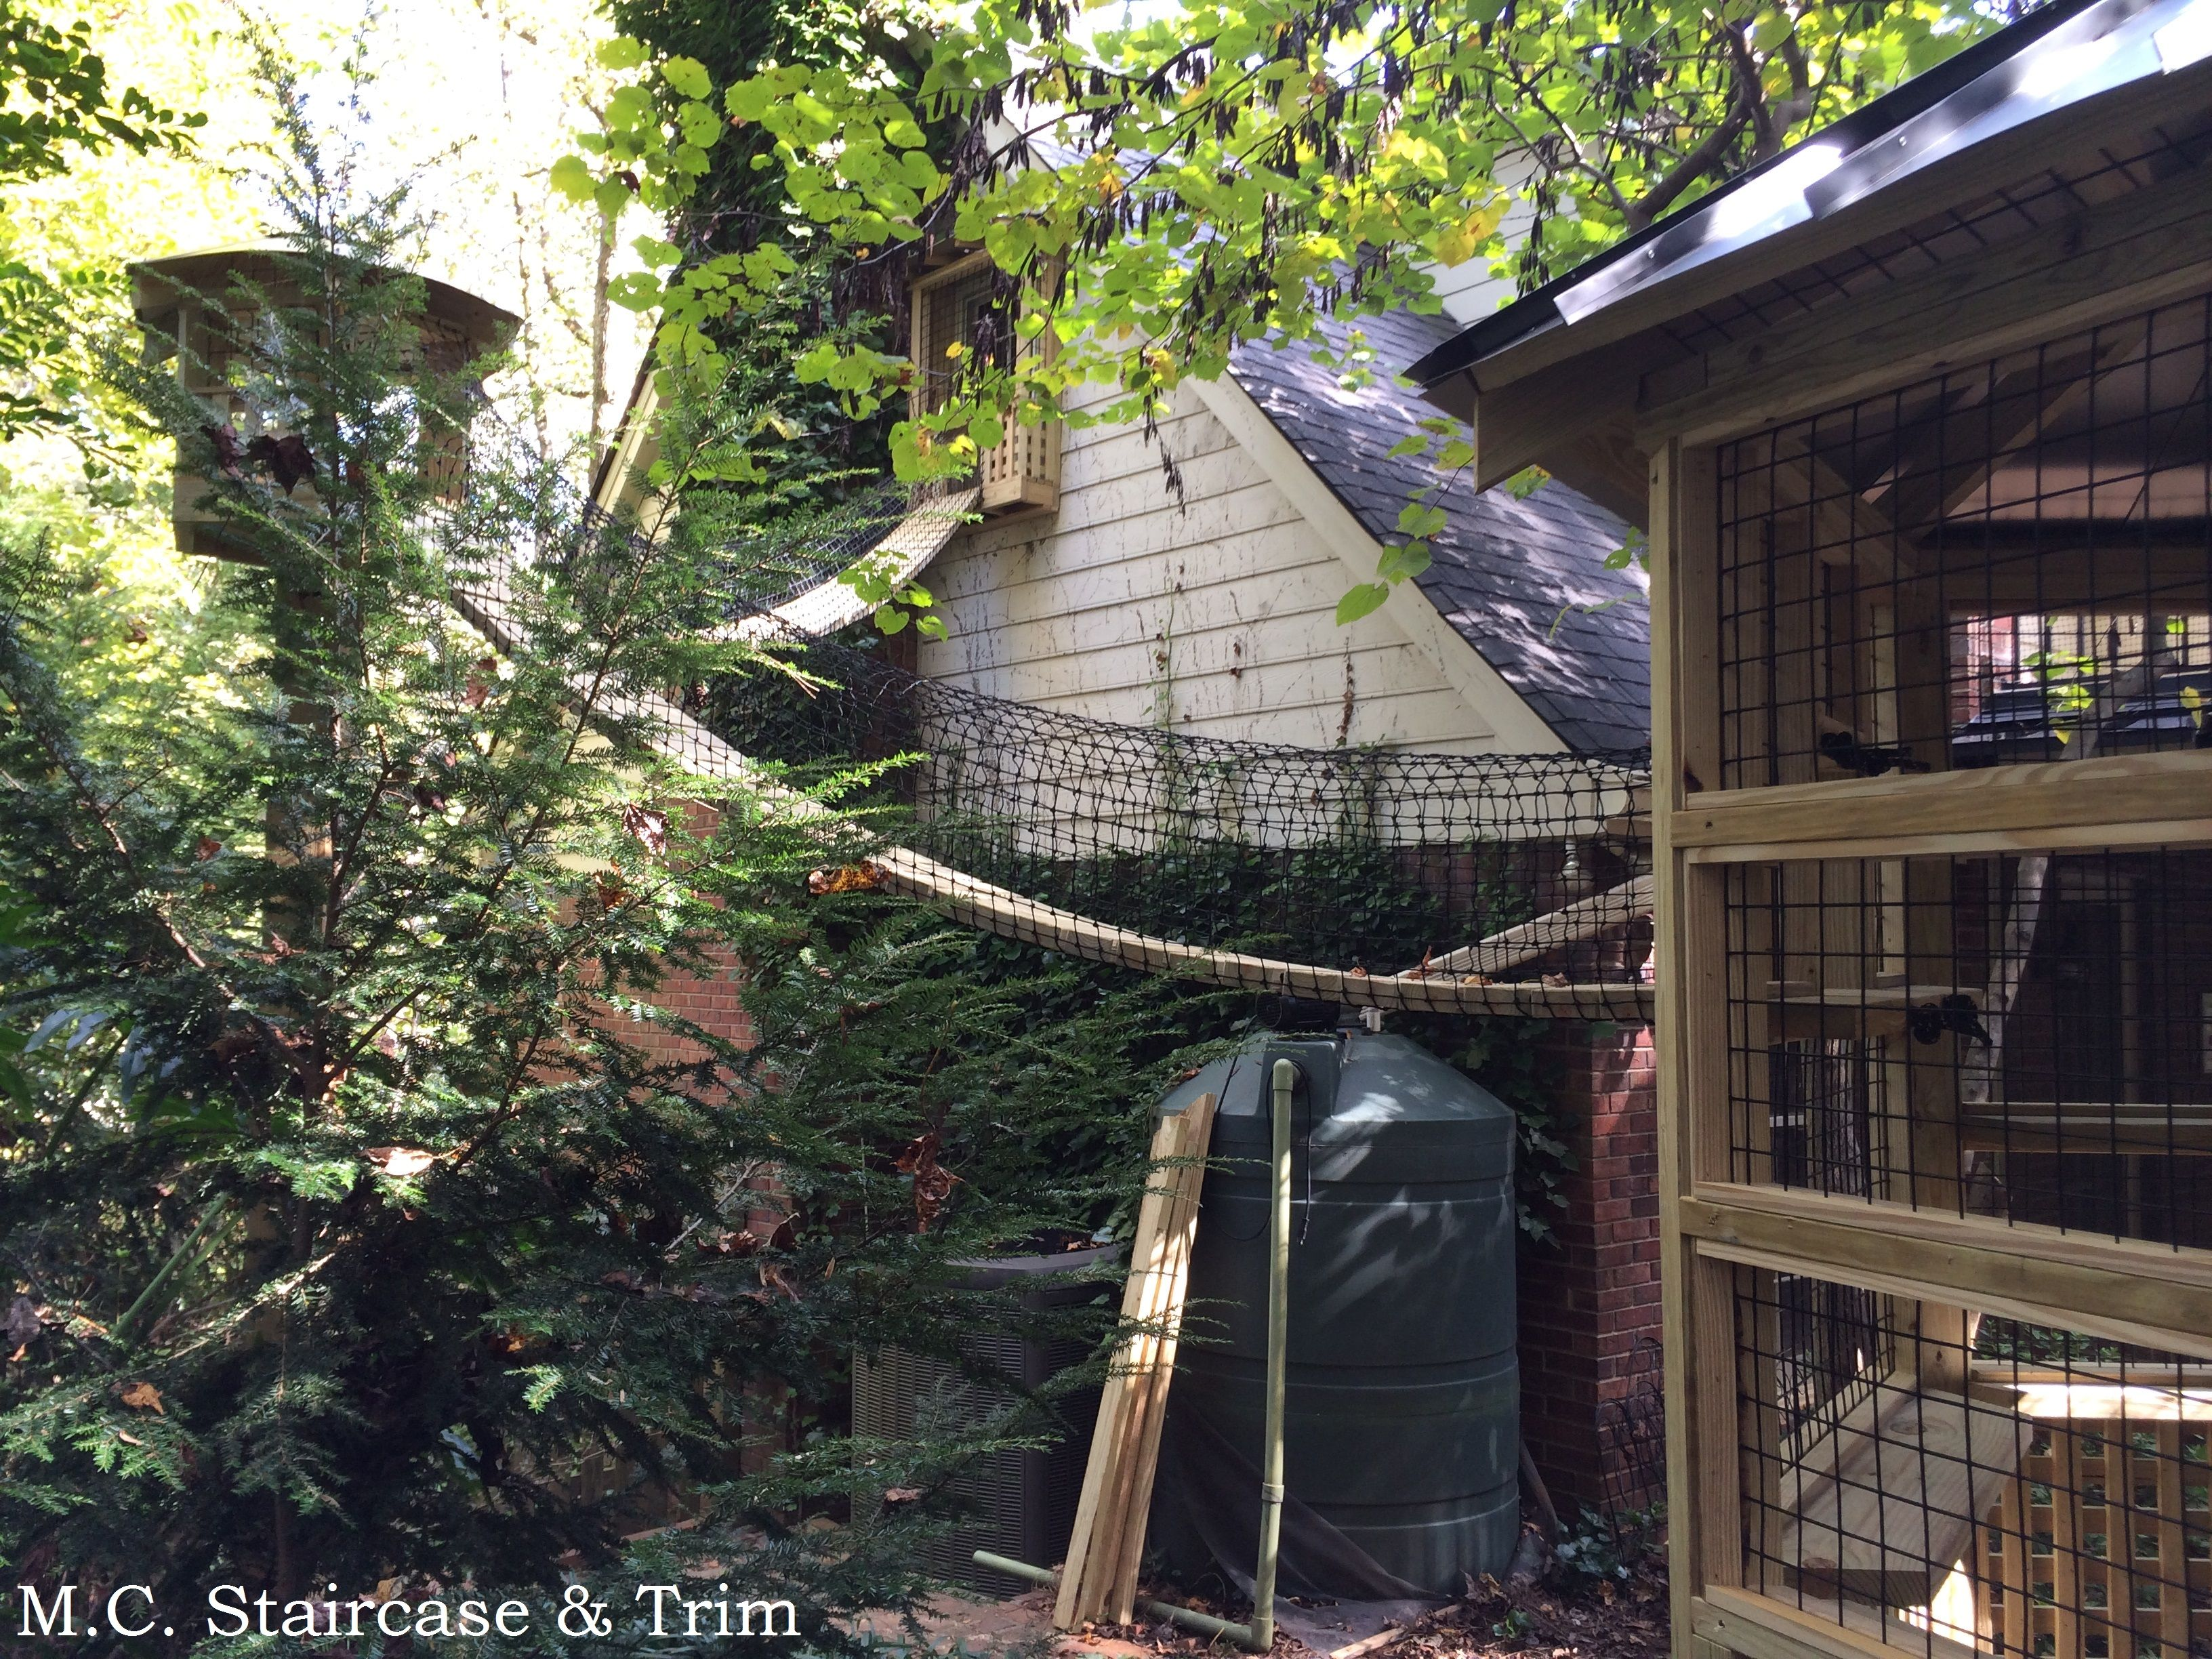 Catio Built And Installed By M C Staircase Trim Catio Includes